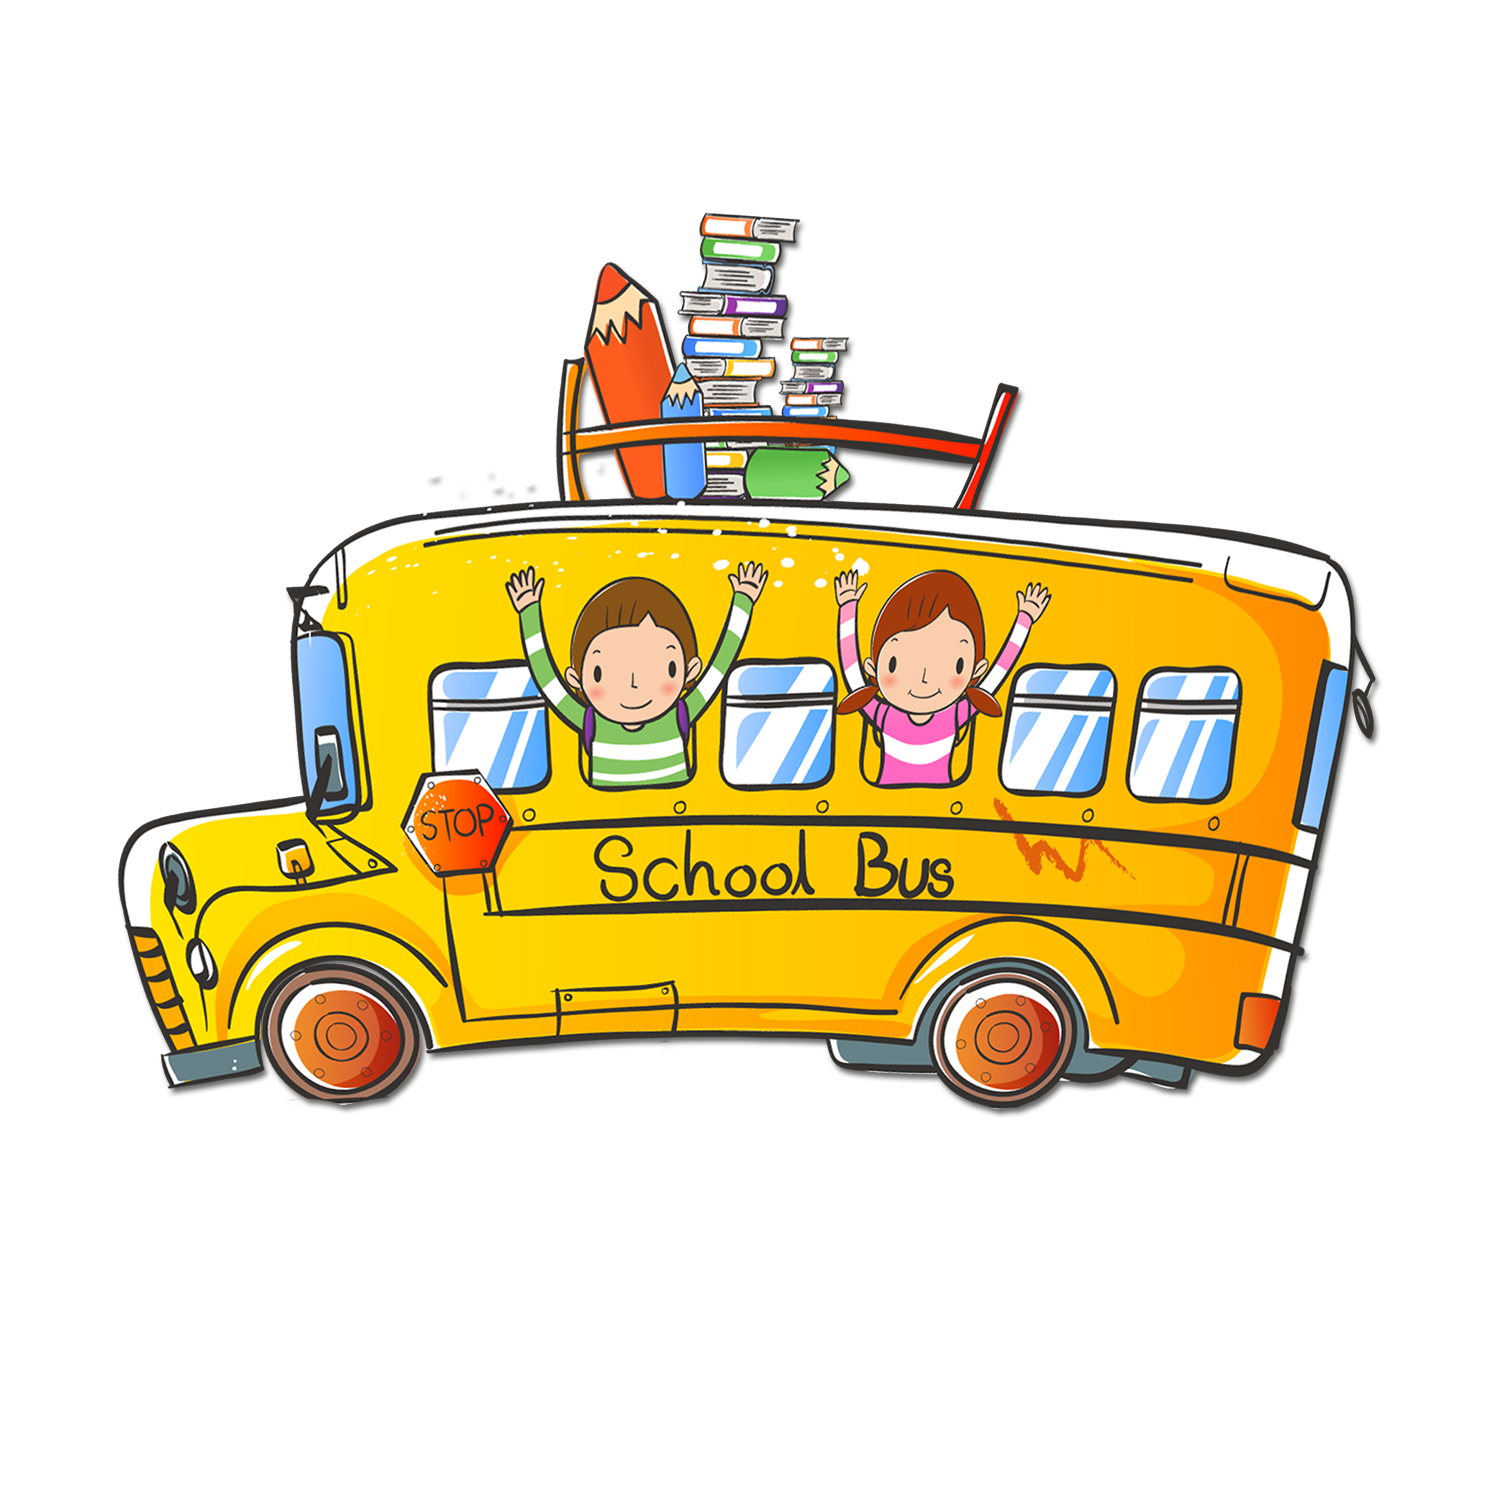 Cartoon school bus clipart picture library School bus - Cartoon school bus 1501*1500 transprent Png Free ... picture library